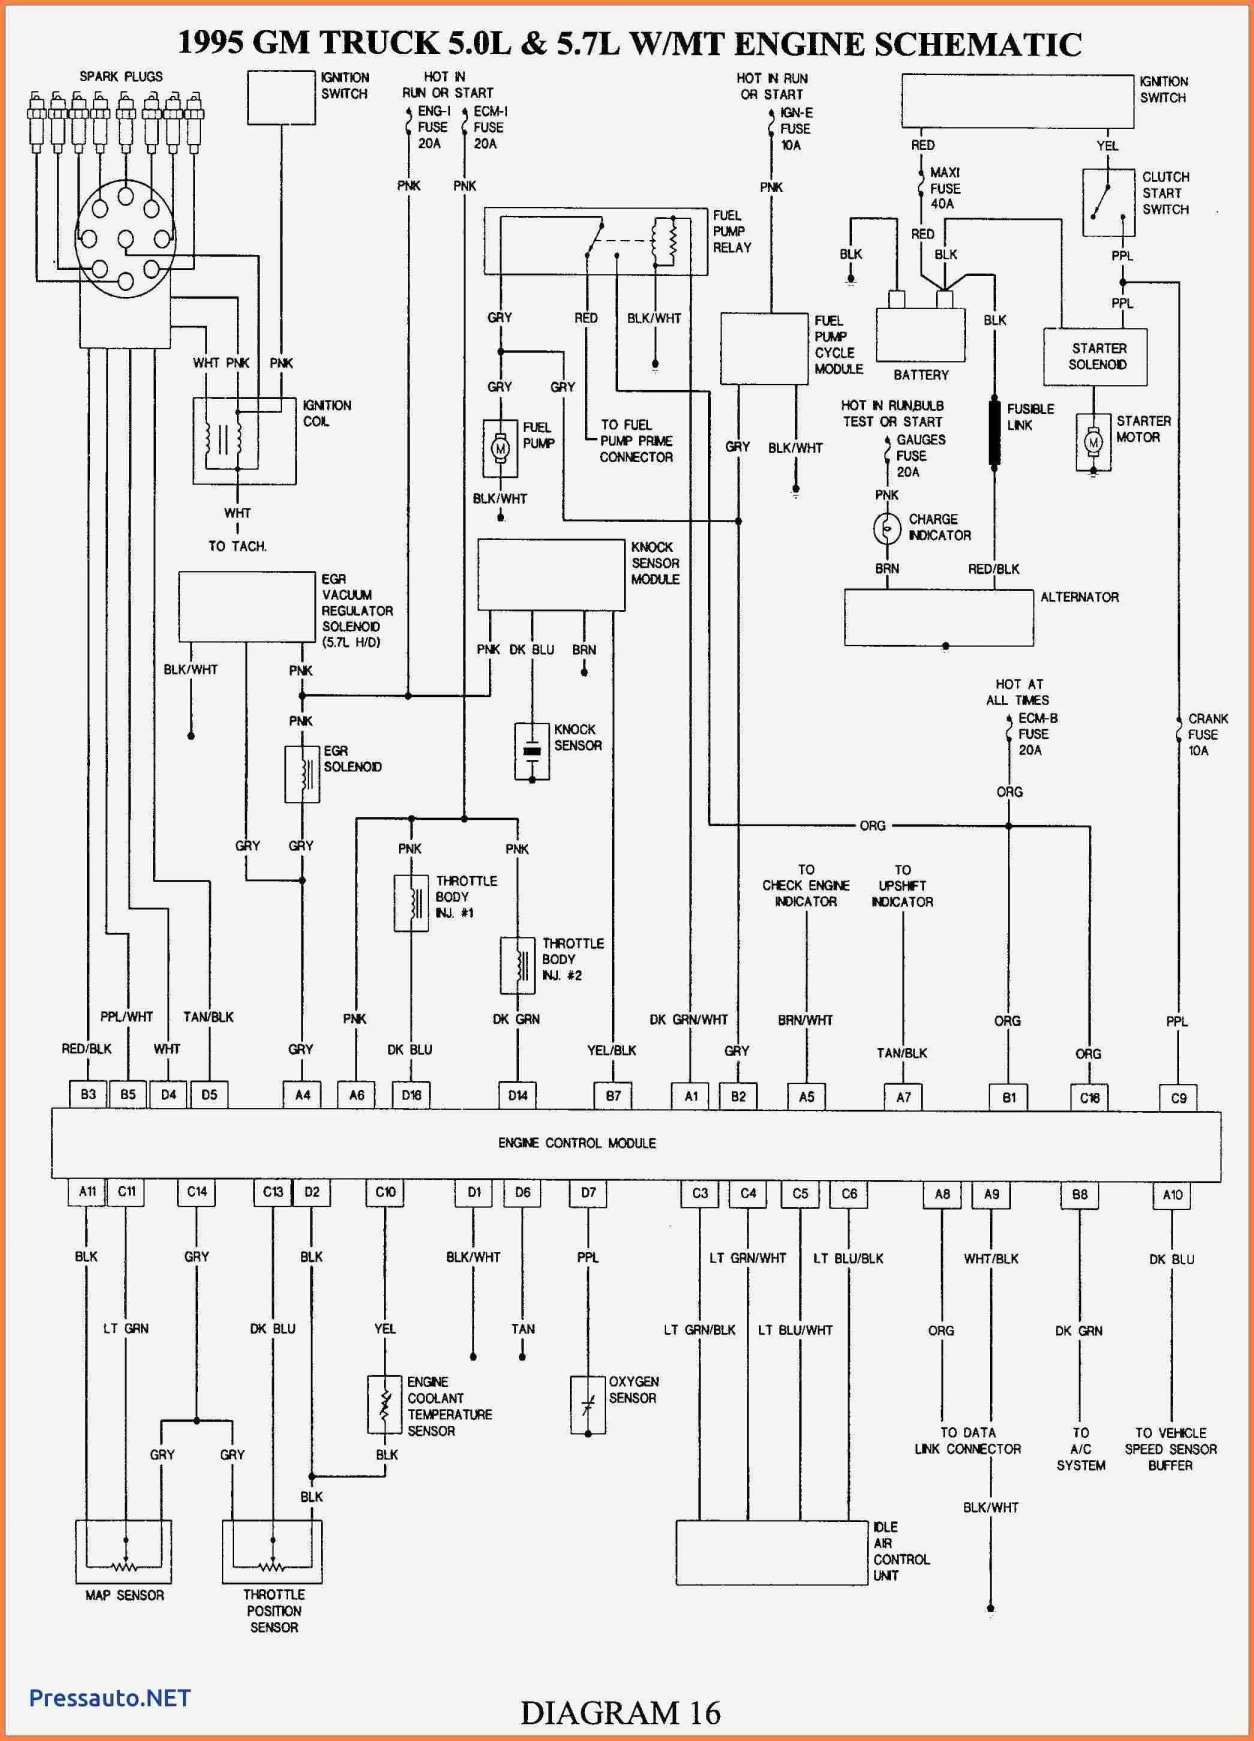 2009 Gmc Sierra 1500 Engine Diagram Wiring Diagram Resource A Resource A Led Illumina It